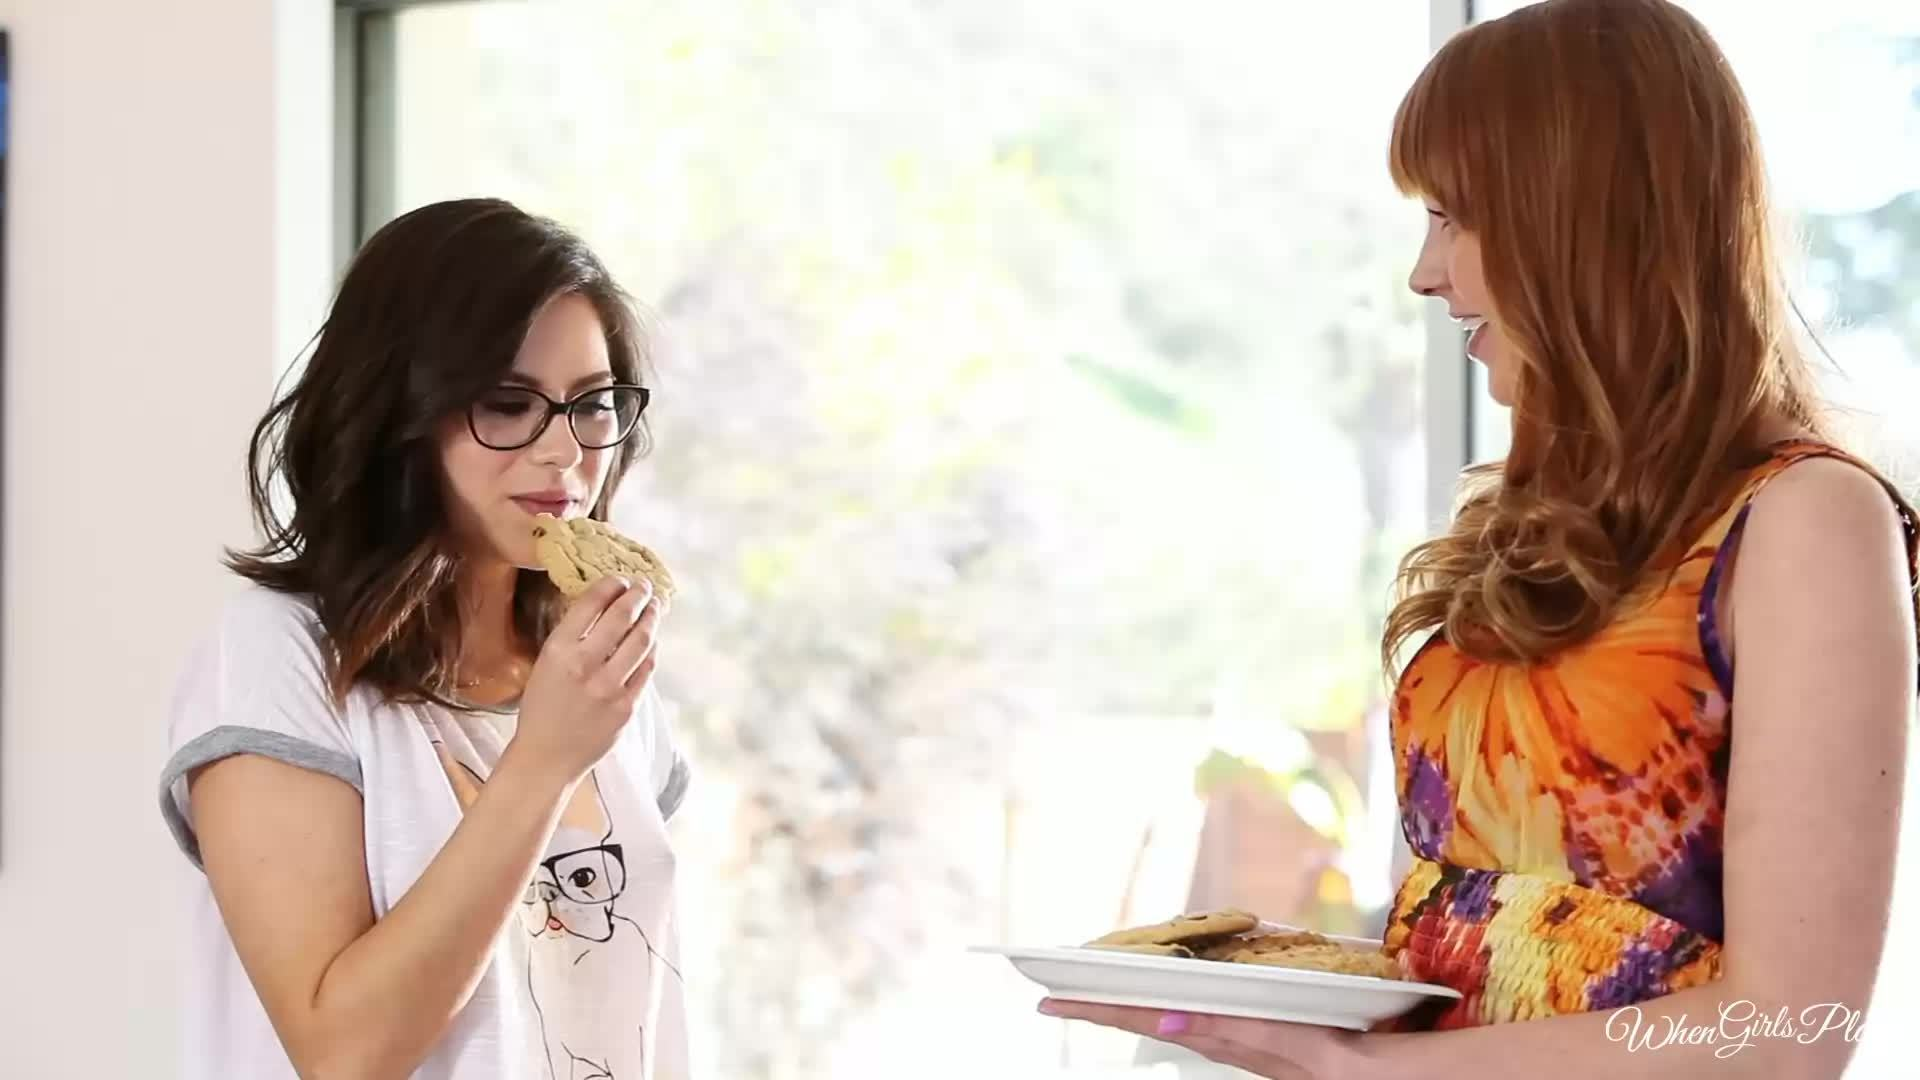 Marie McCray and Shyla Jennings sharing some cookies